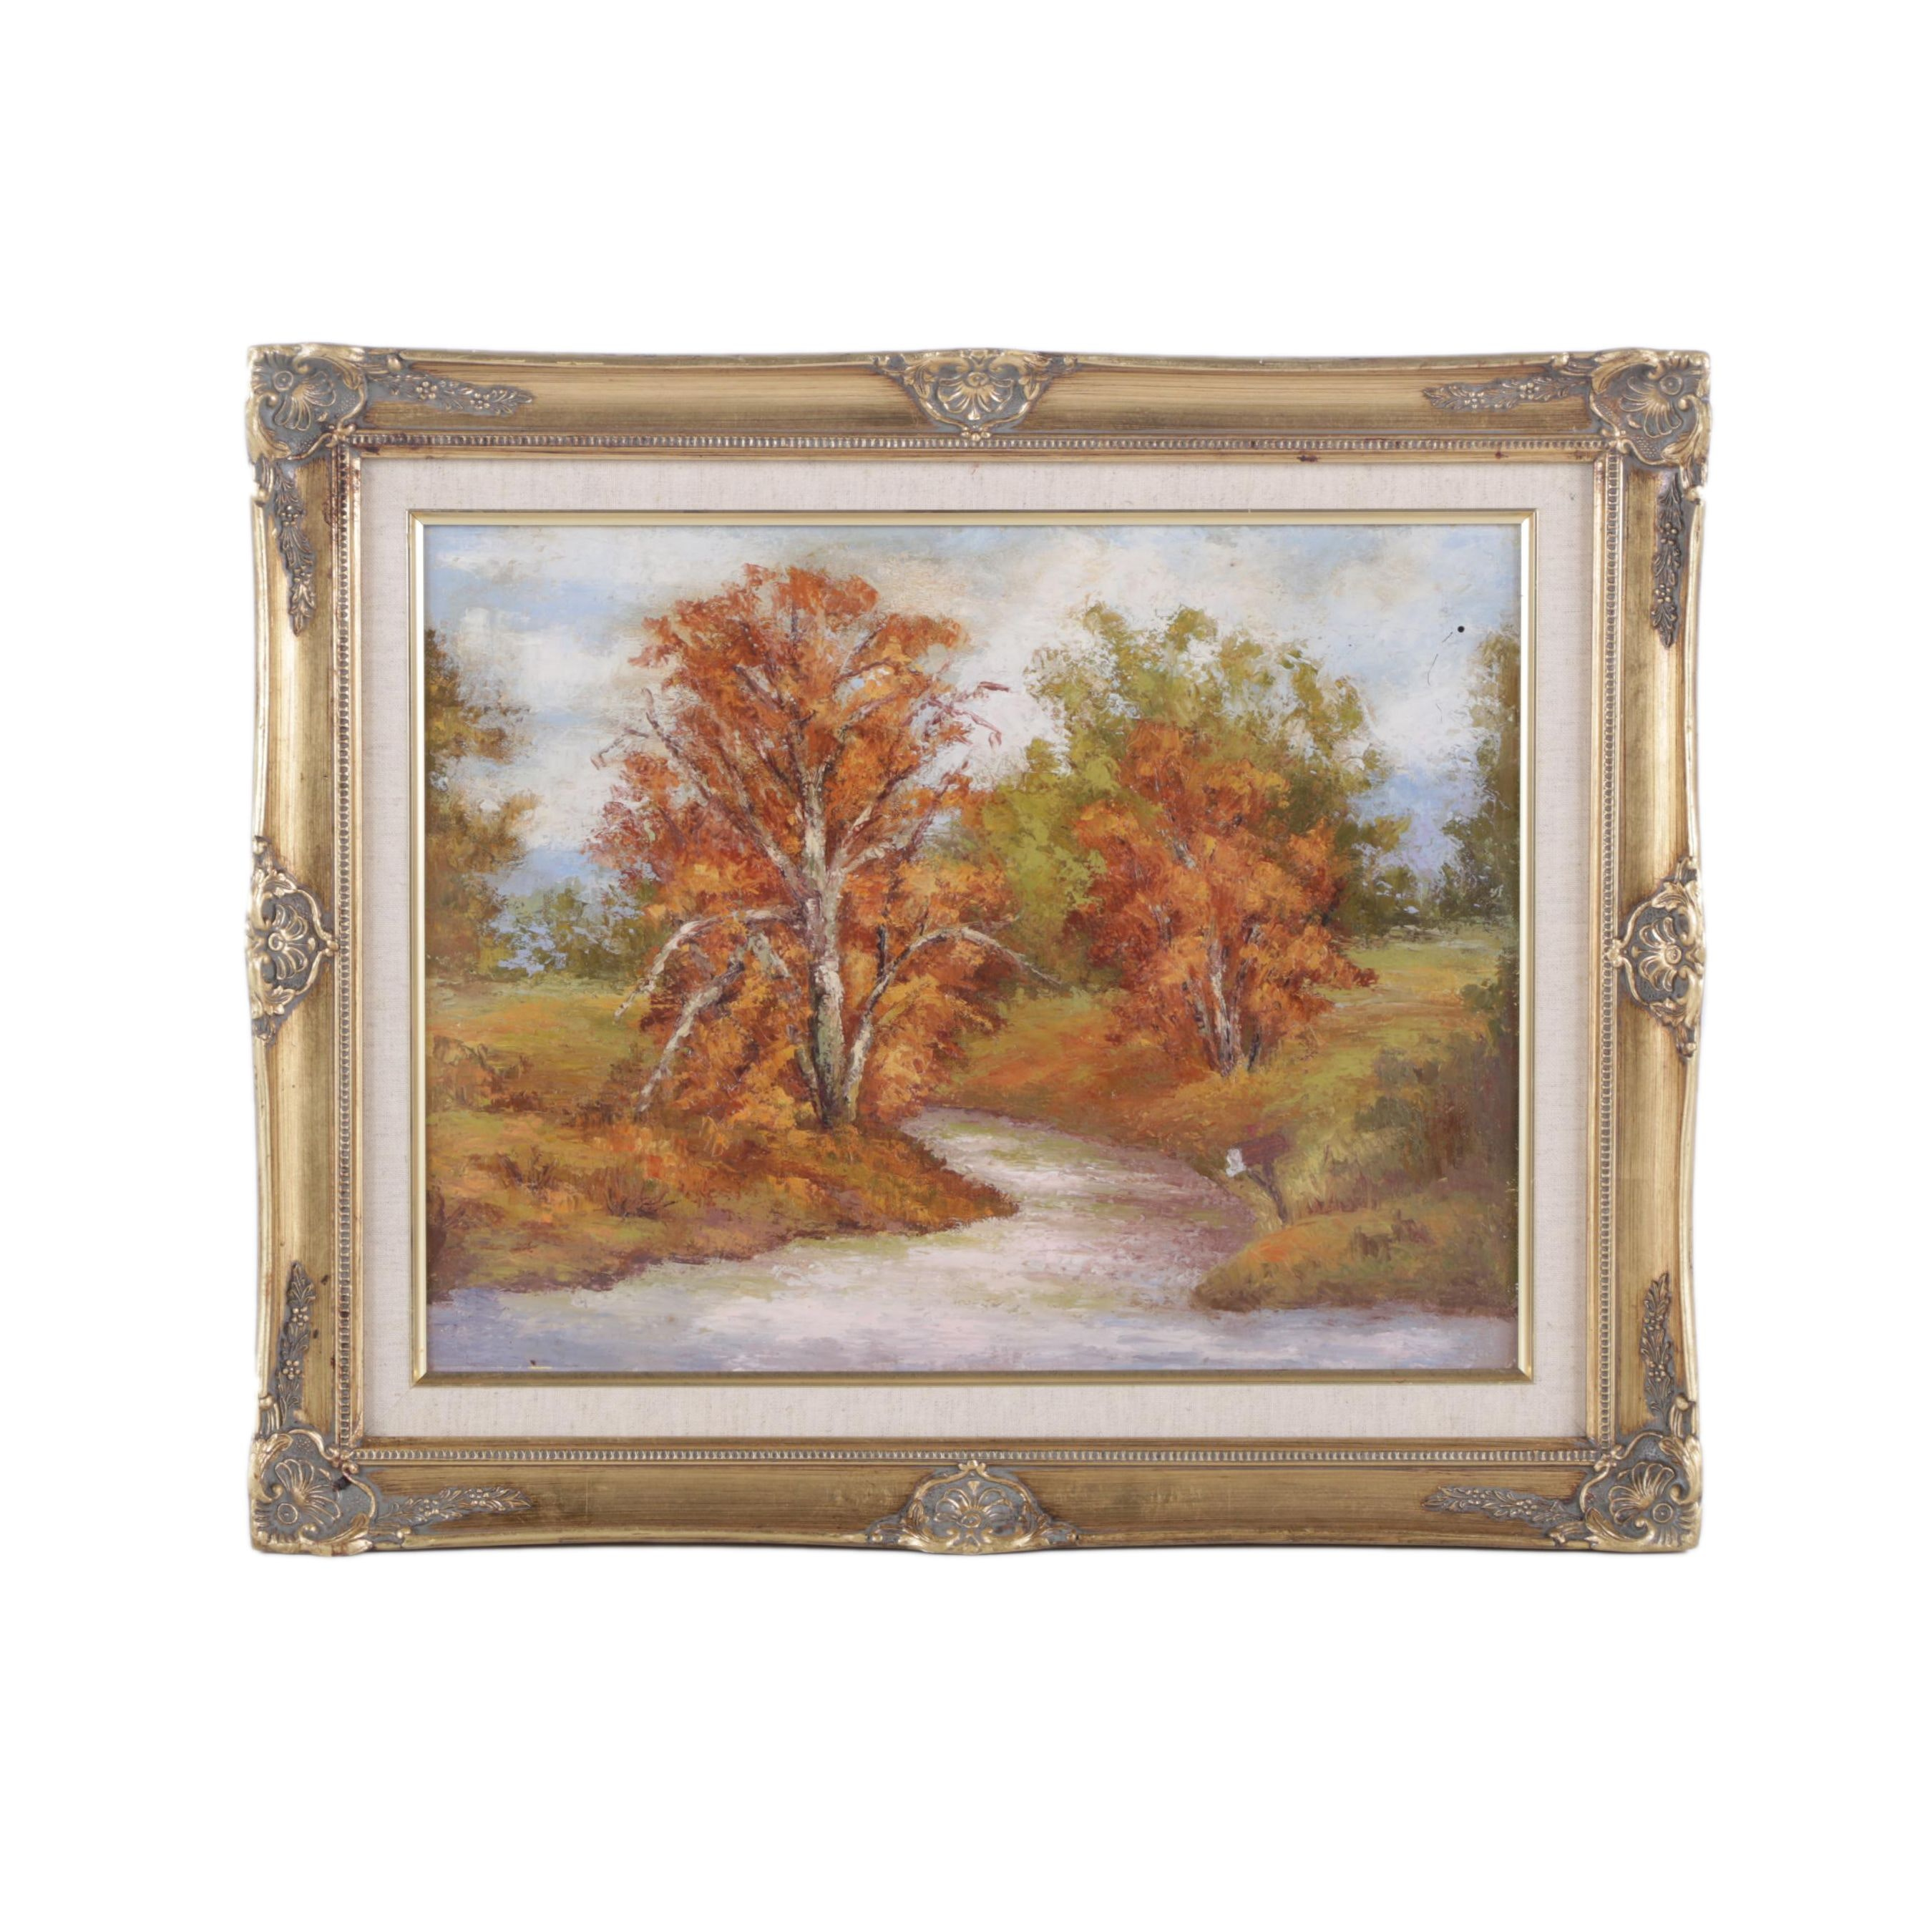 Oil Painting on Canvas Board of an Autumnal Landscape